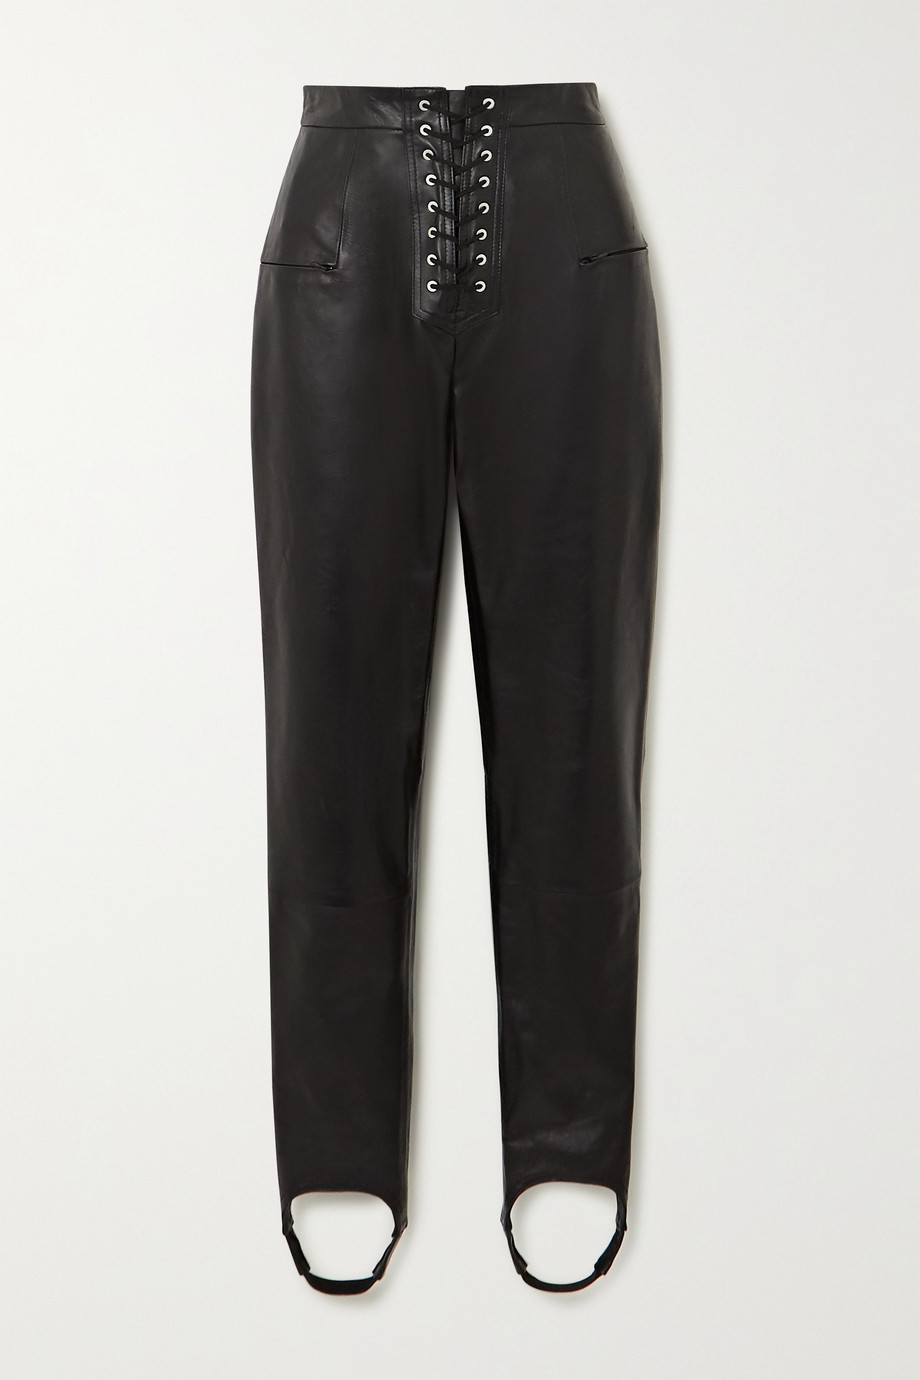 Unravel Project Lace-up leather skinny stirrup pants